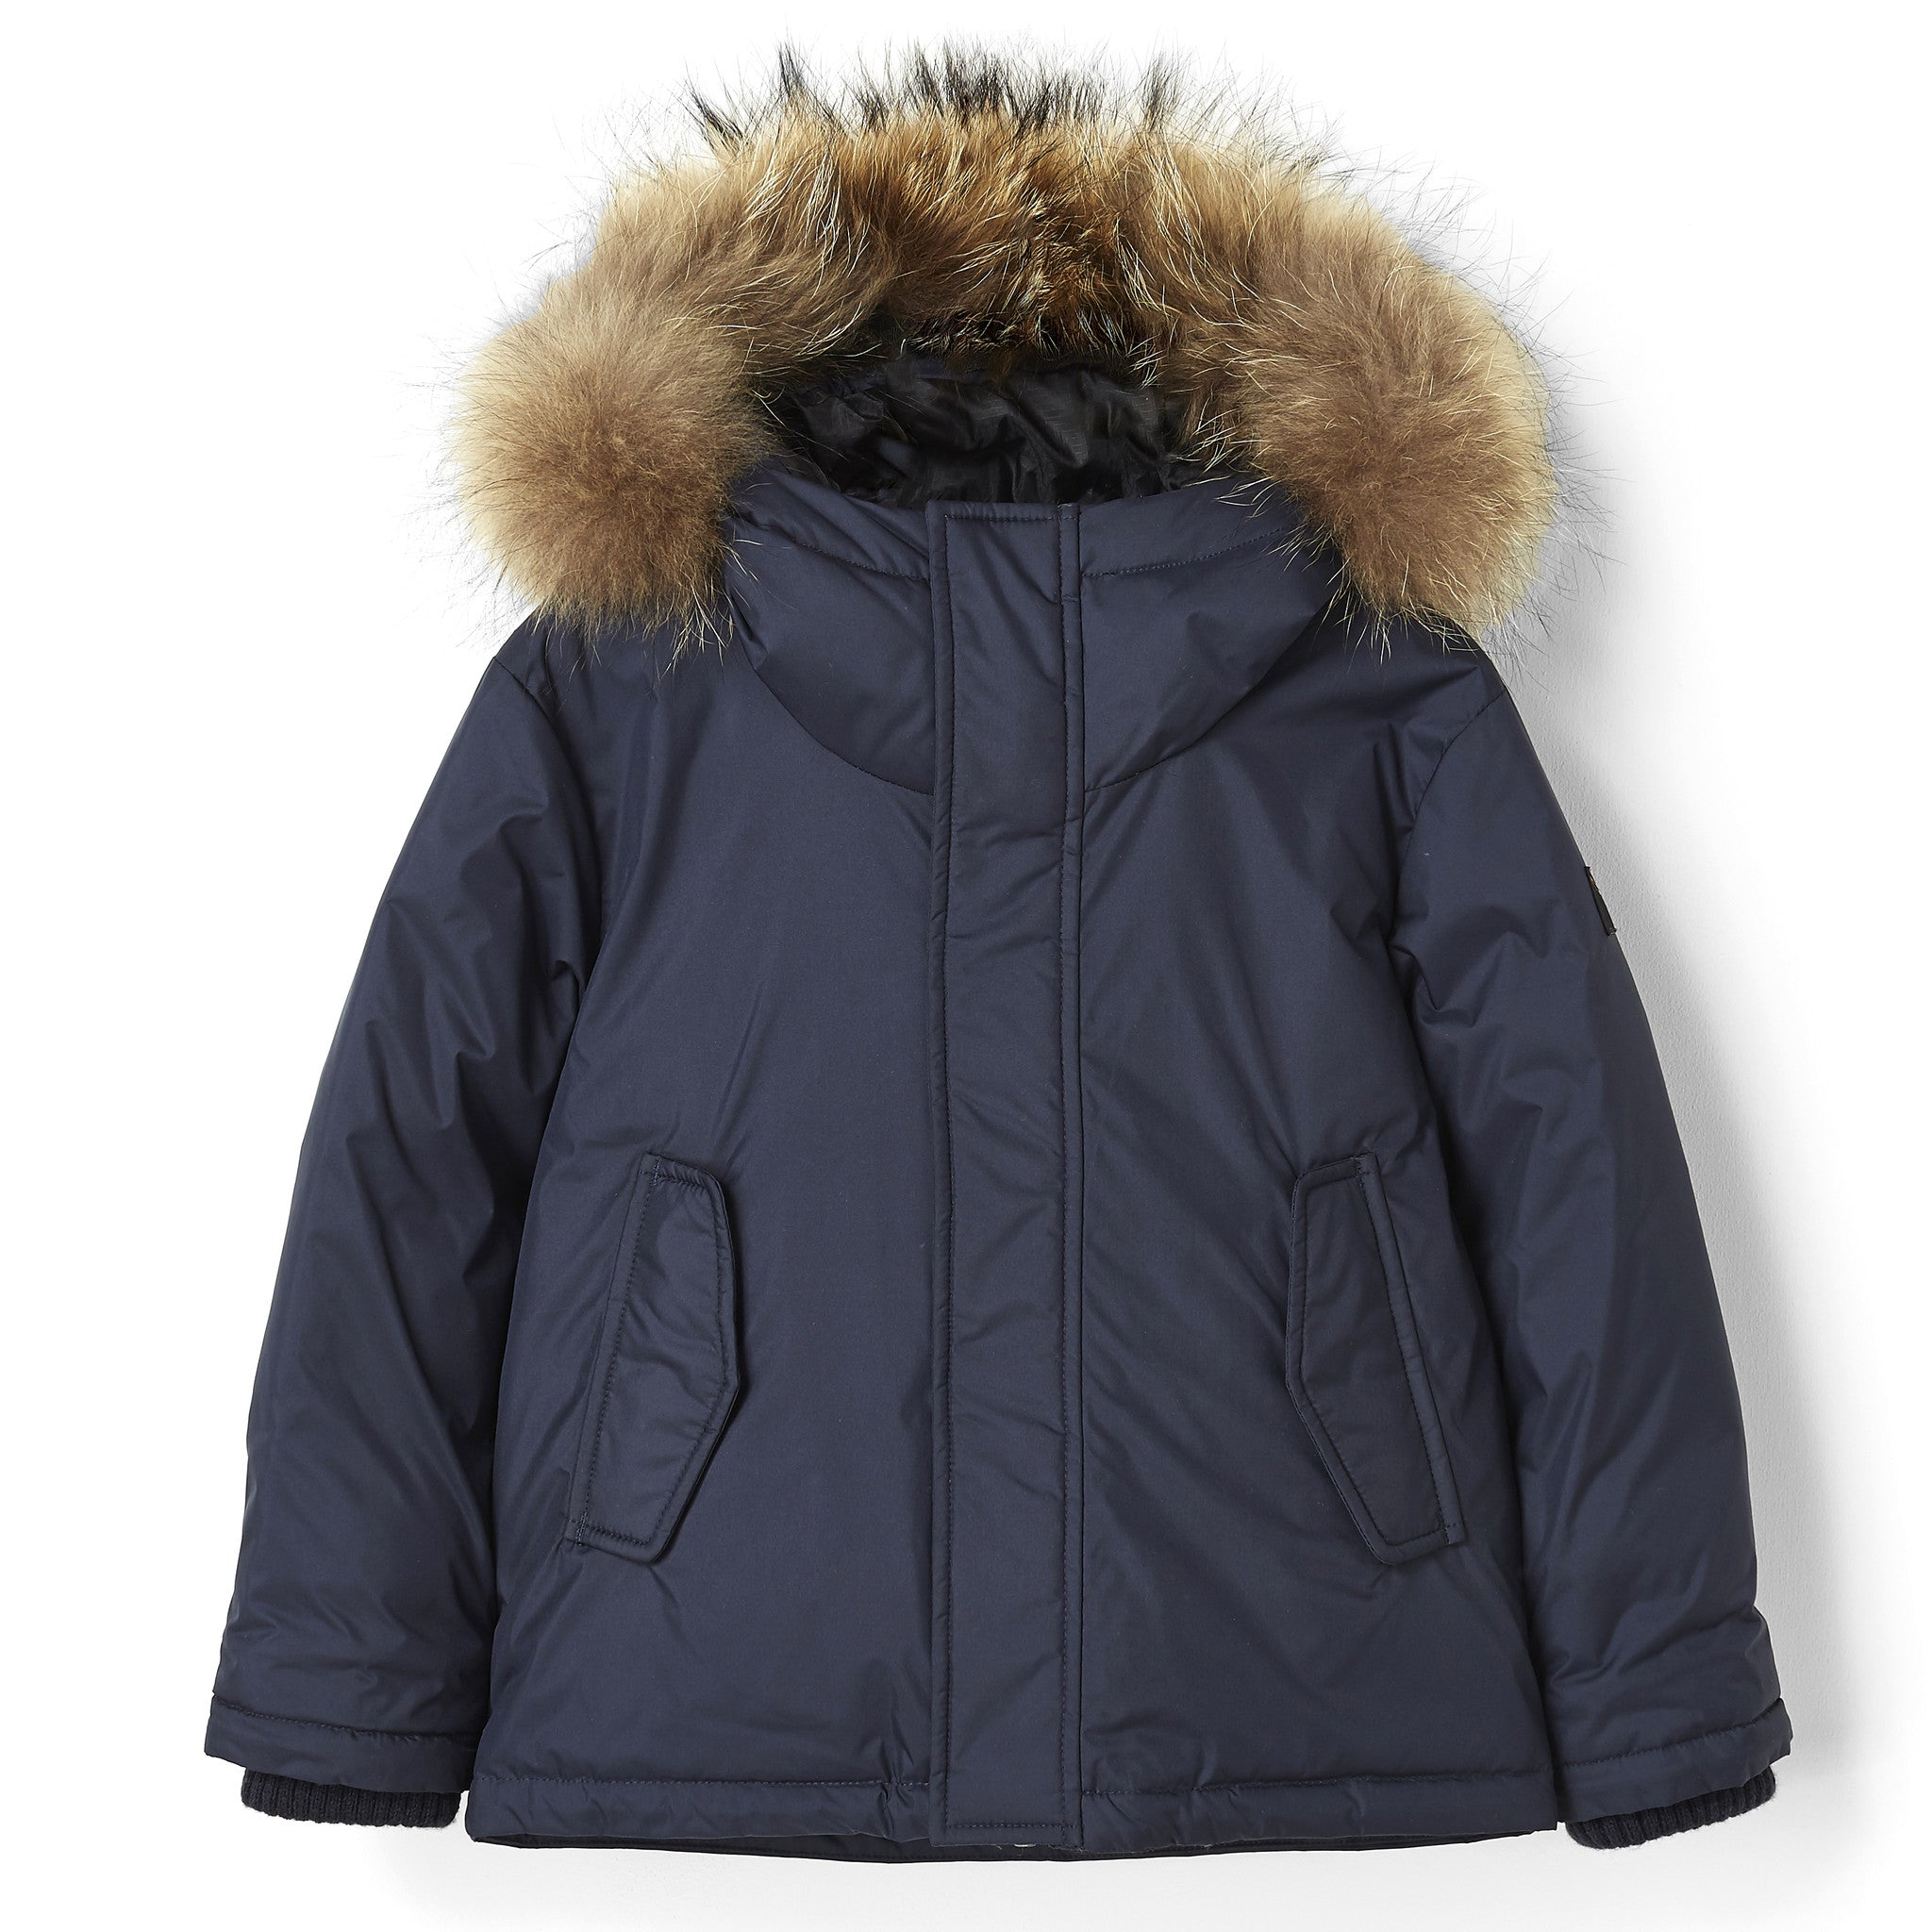 SNOWTRIP Navy - Down Jacket with Real Fur Hood – Finger in the nose